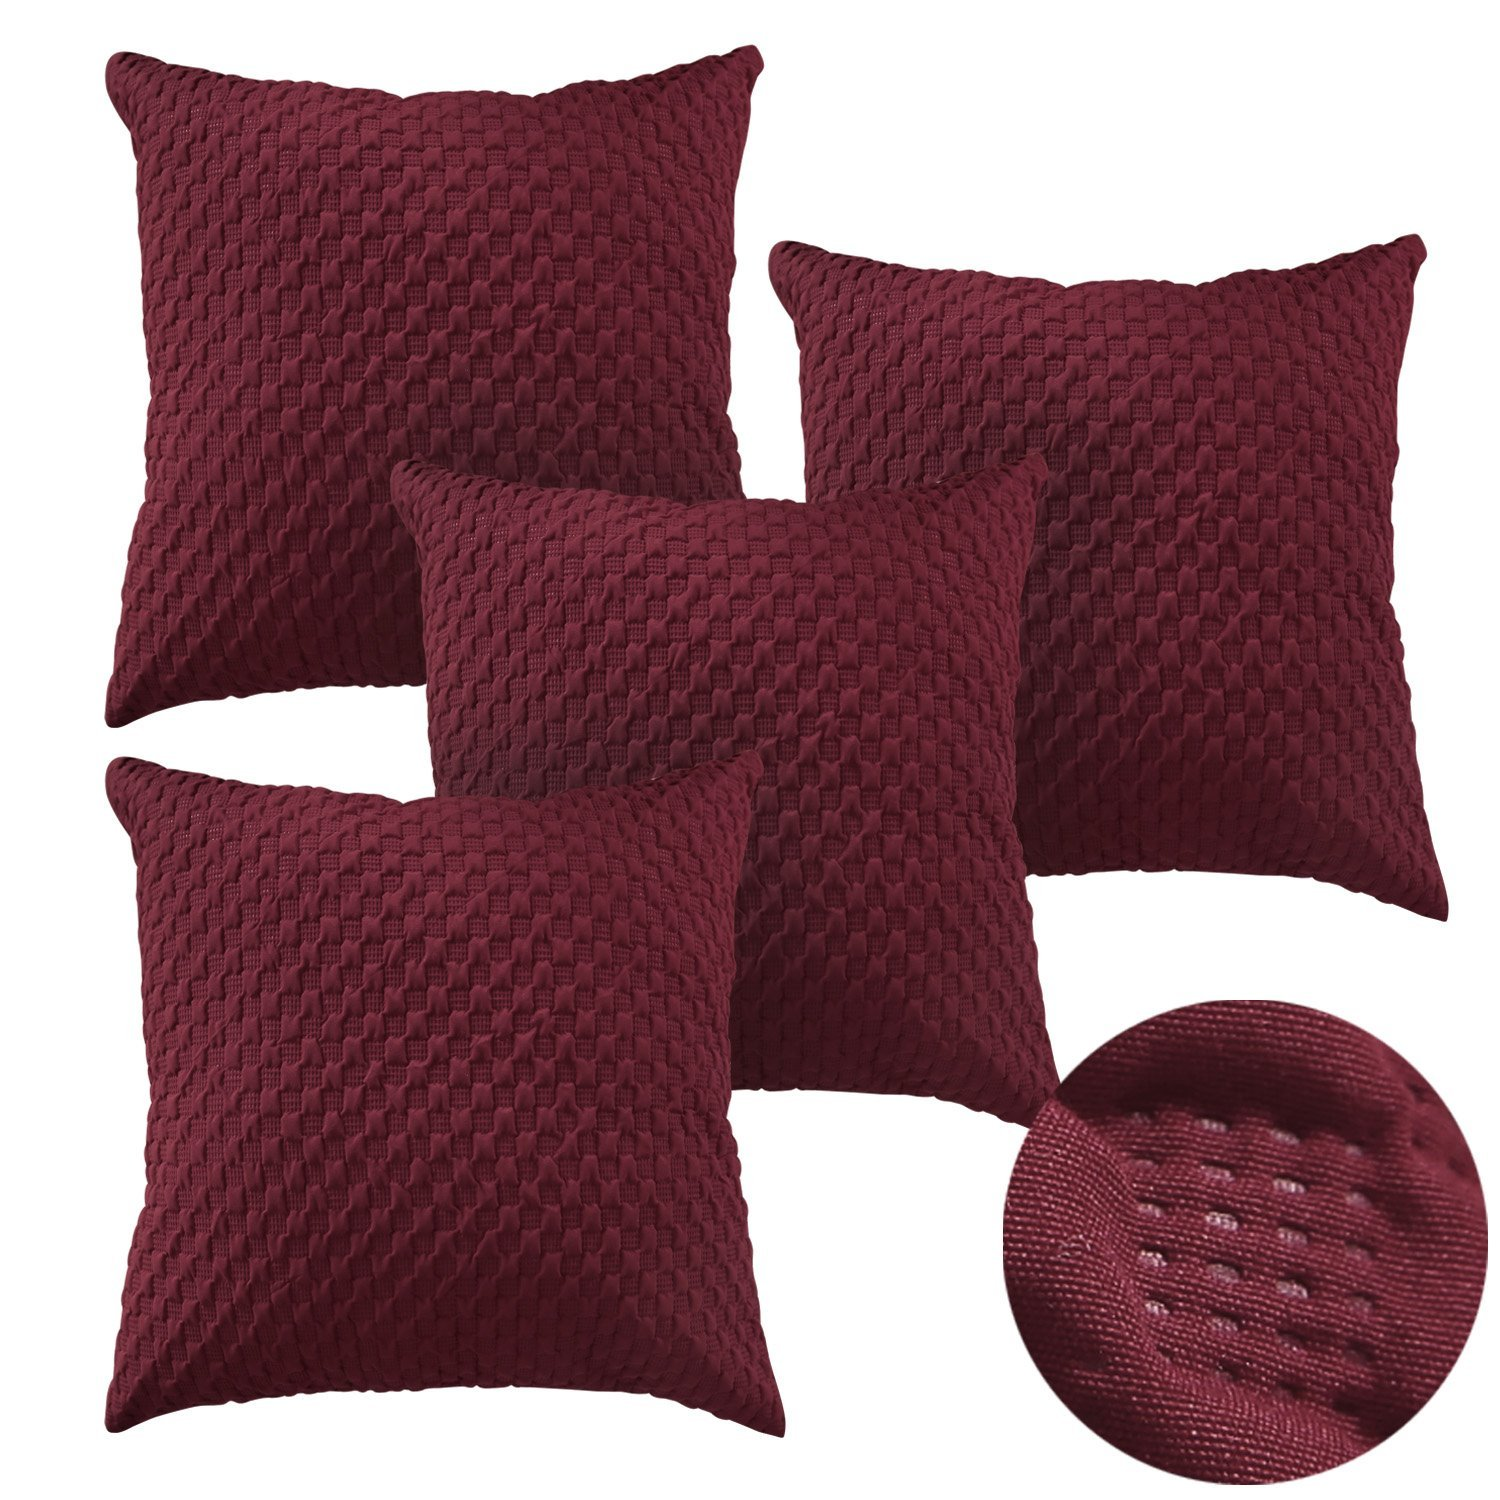 Deconovo Decorative Pillows Super Soft Square Embossd Throw Cushion Covers Pillow Covers Decorative 18 x 18 Inch Date Red Set of 4